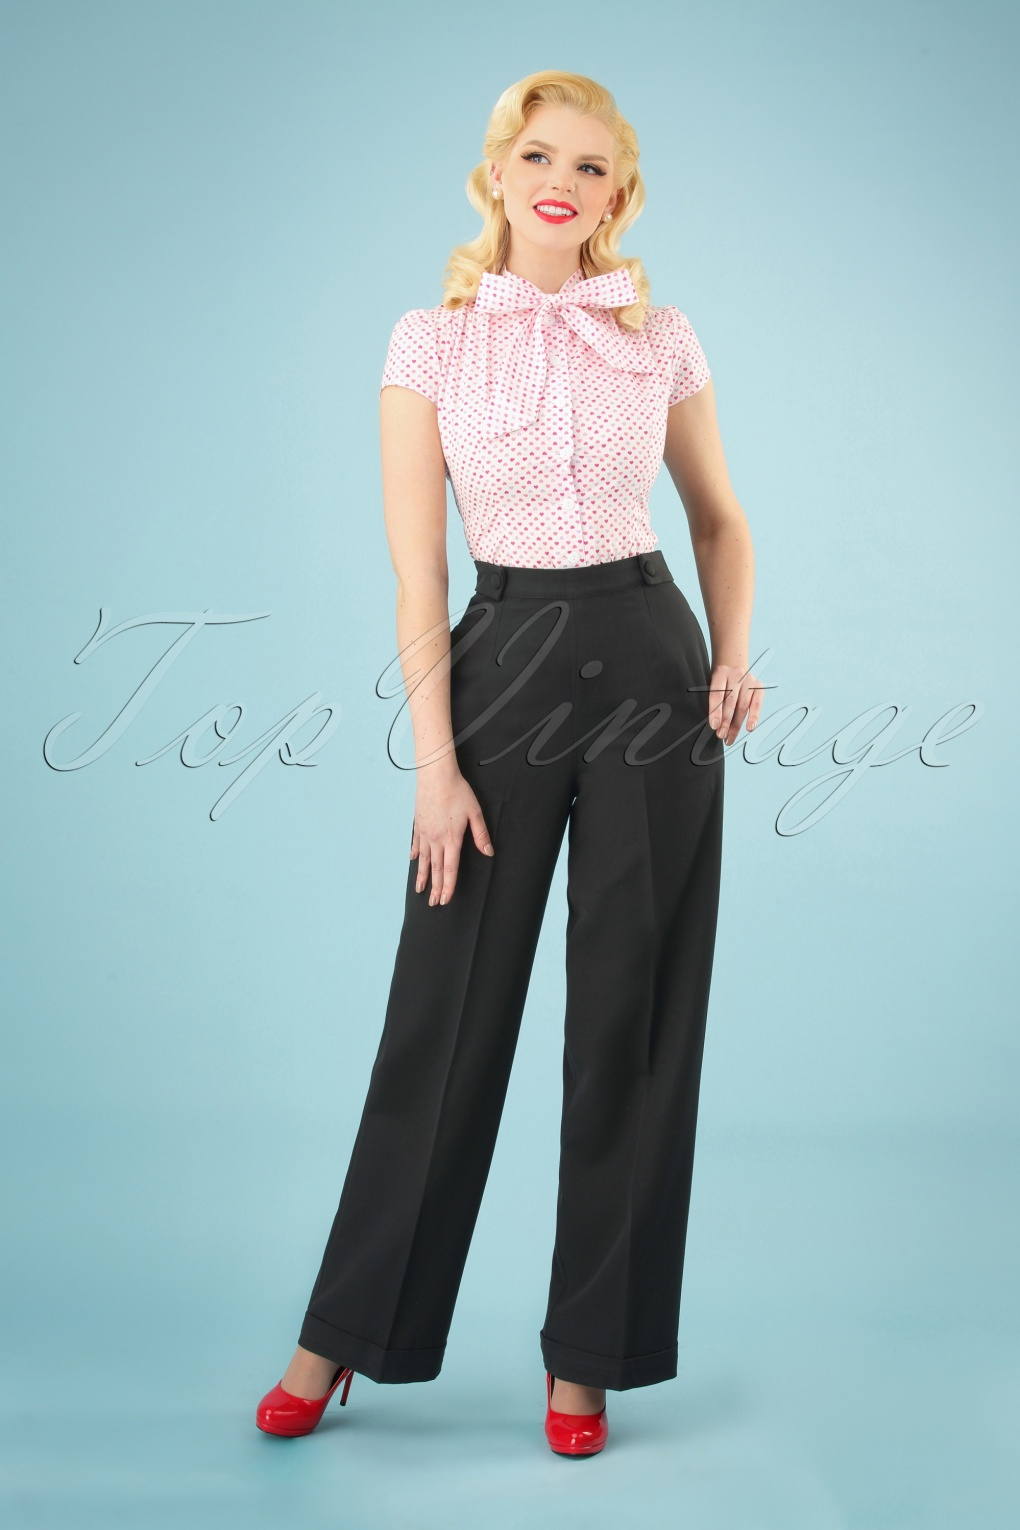 Vintage High Waisted Trousers, Sailor Pants, Jeans 40s Party On Classy Trousers in Black £31.61 AT vintagedancer.com